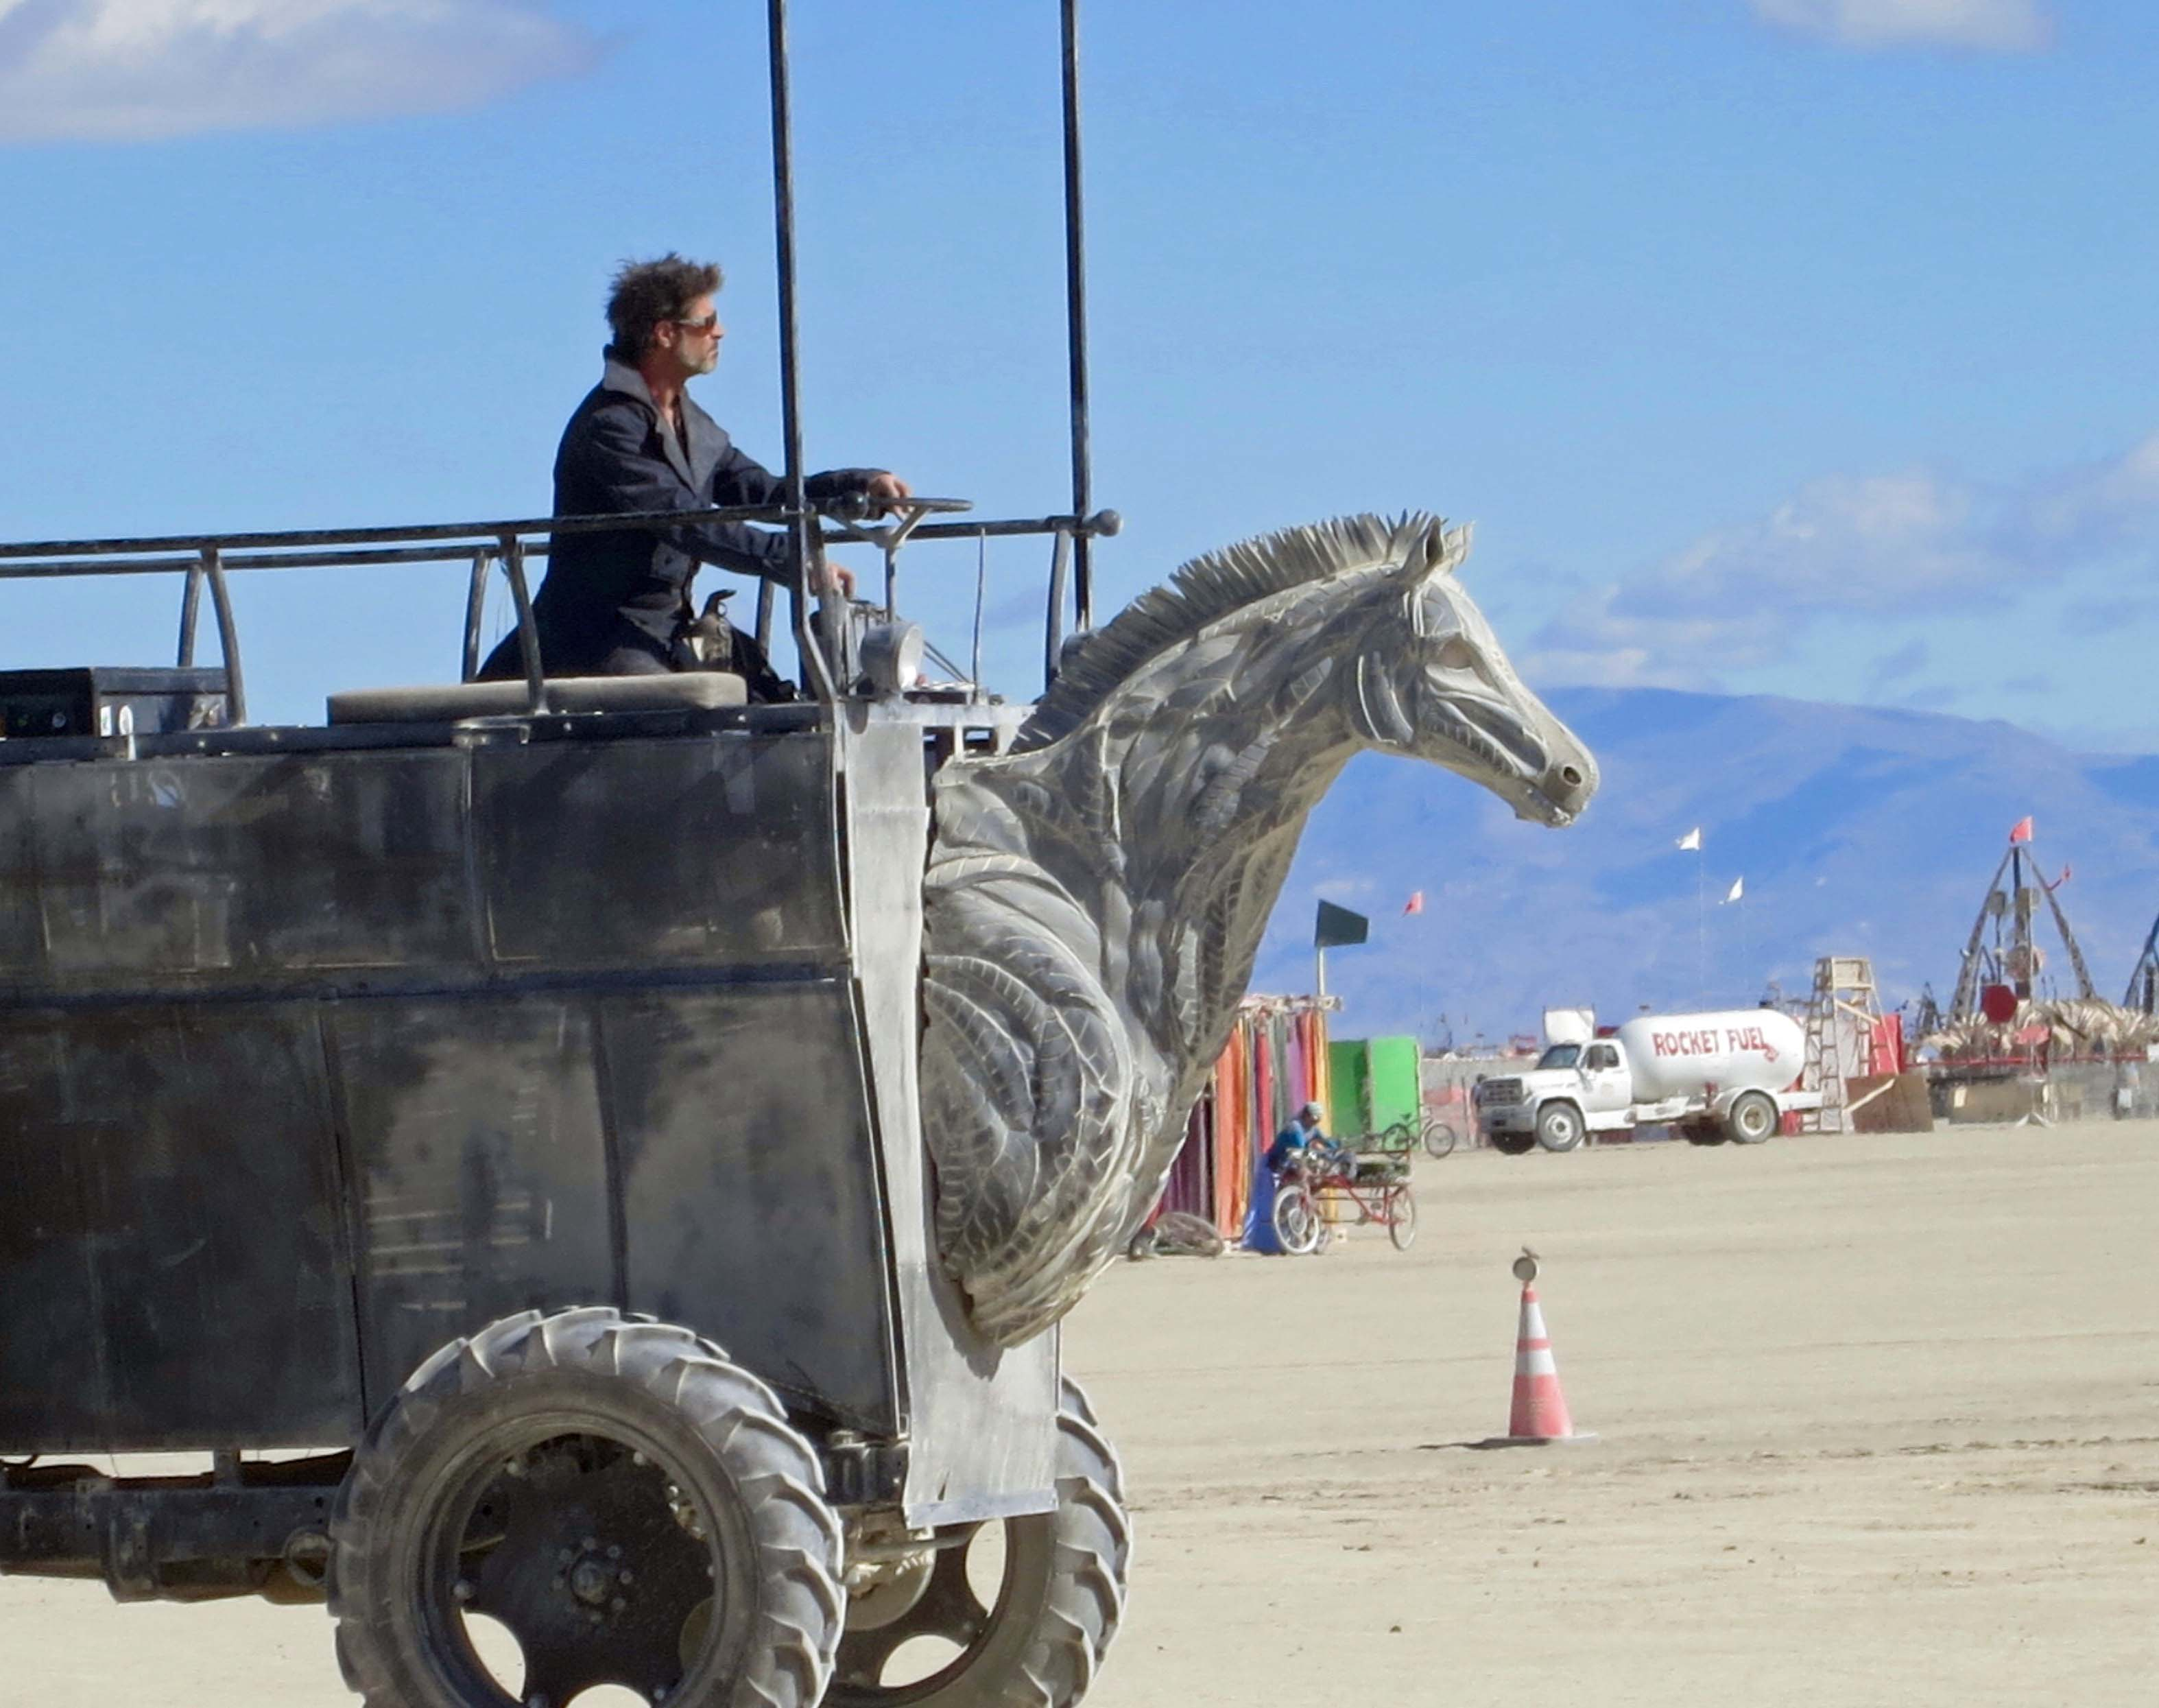 16 Horse head mutant vehicle 2 at Burning man 2015